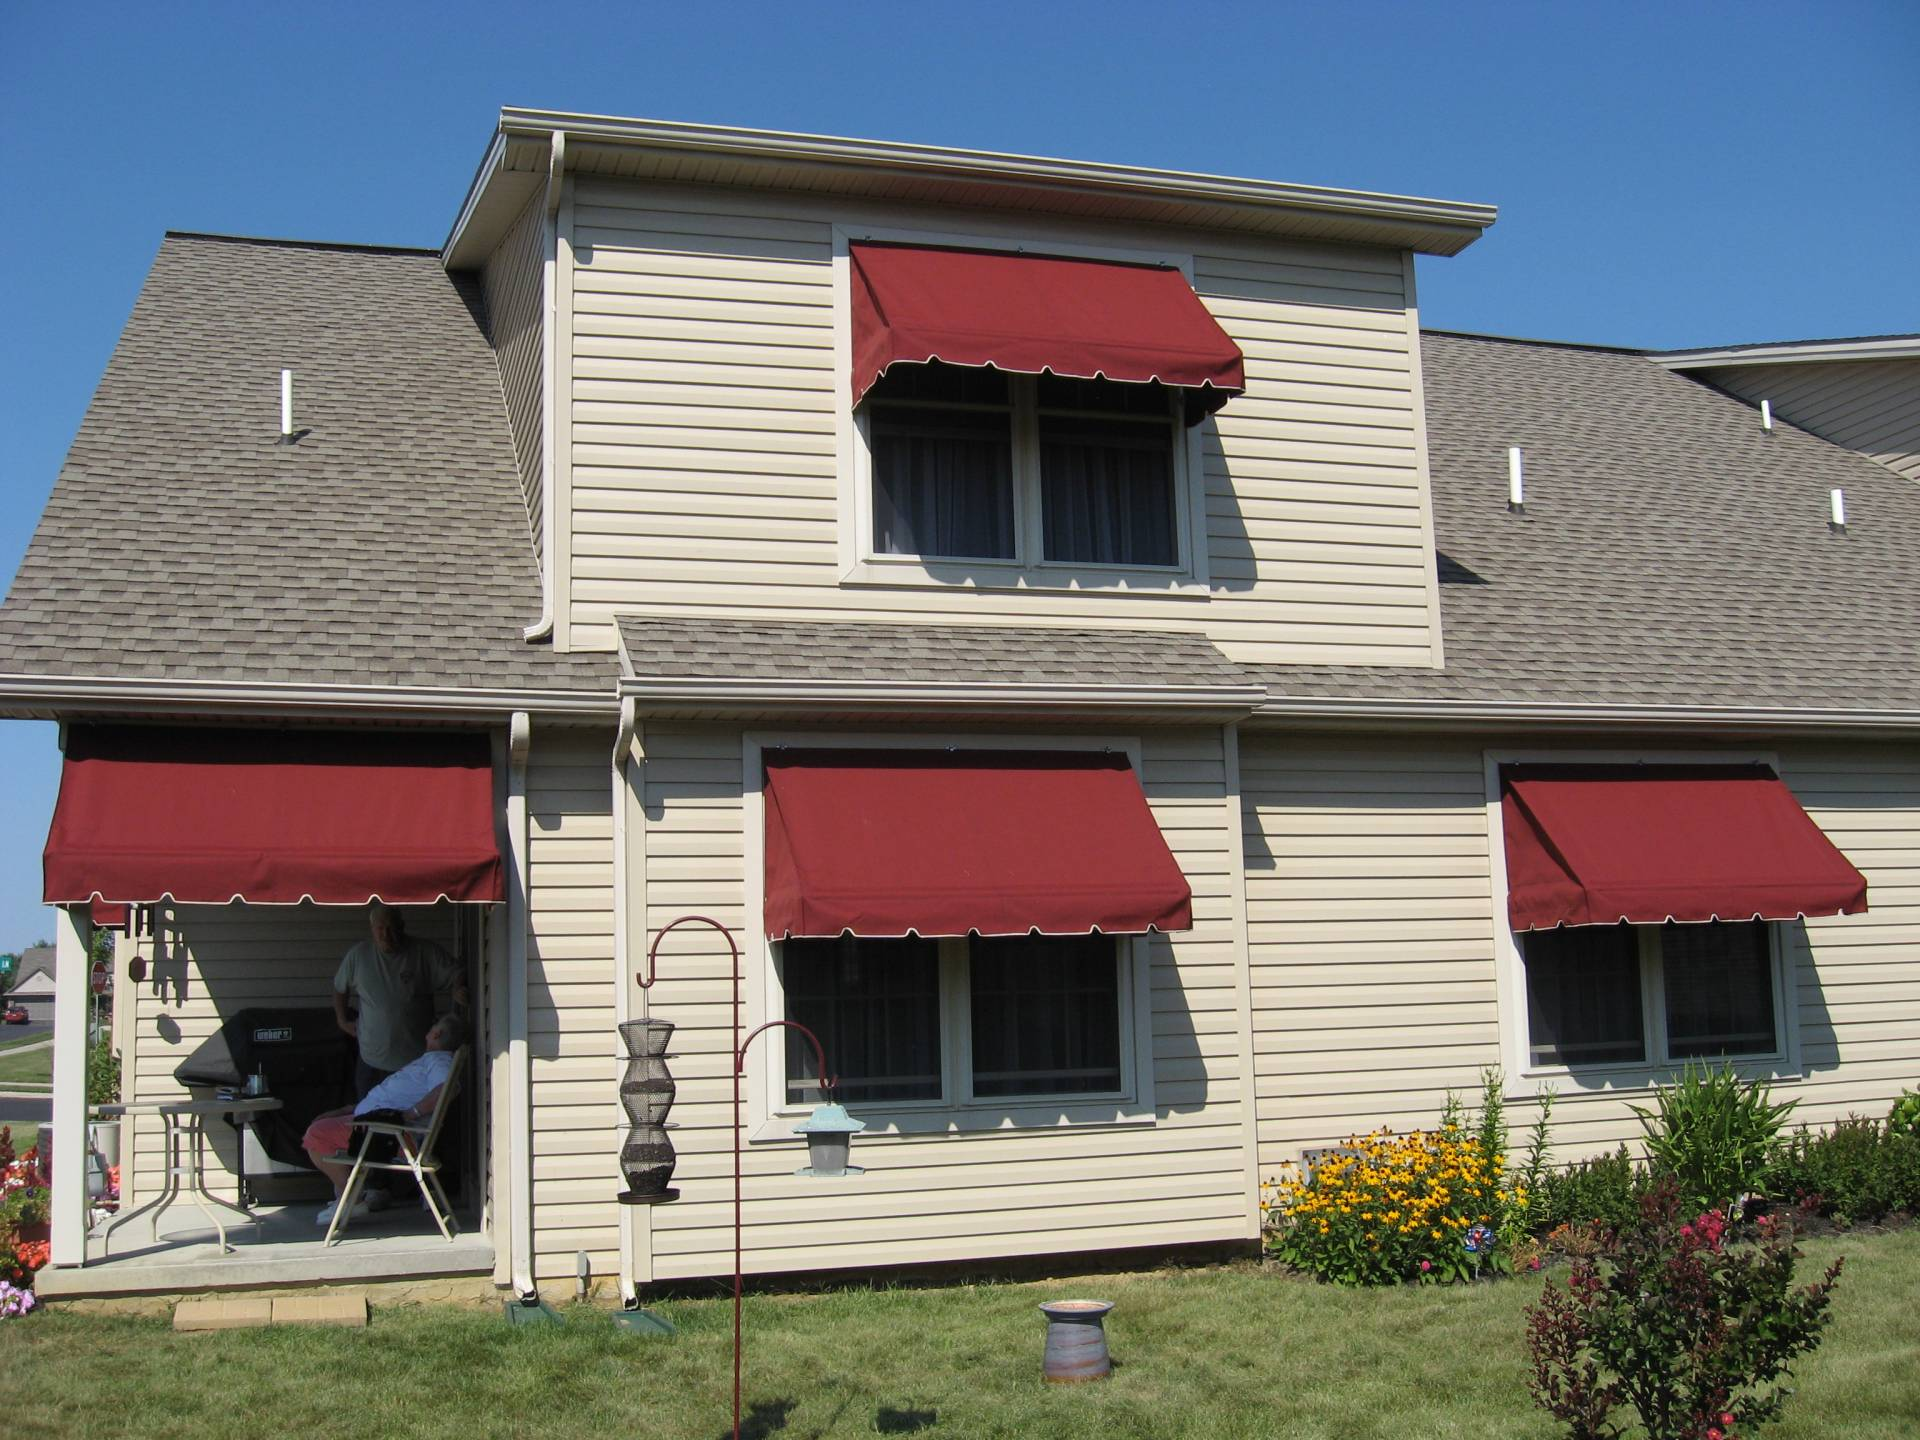 Window awnings - showing how the awnings provide shade for ...